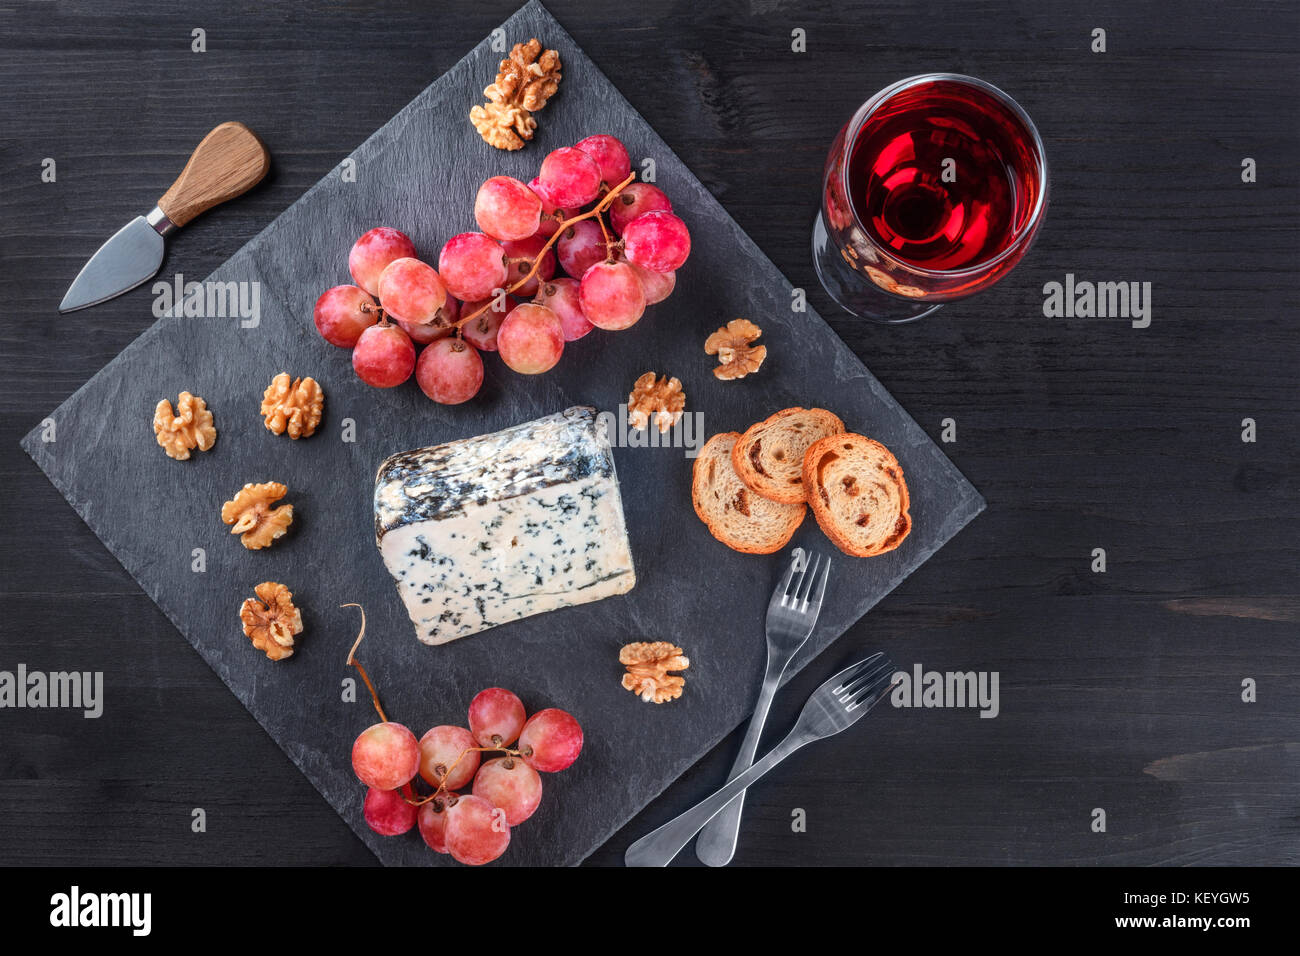 Blue cheese and grapes on black with copy space - Stock Image